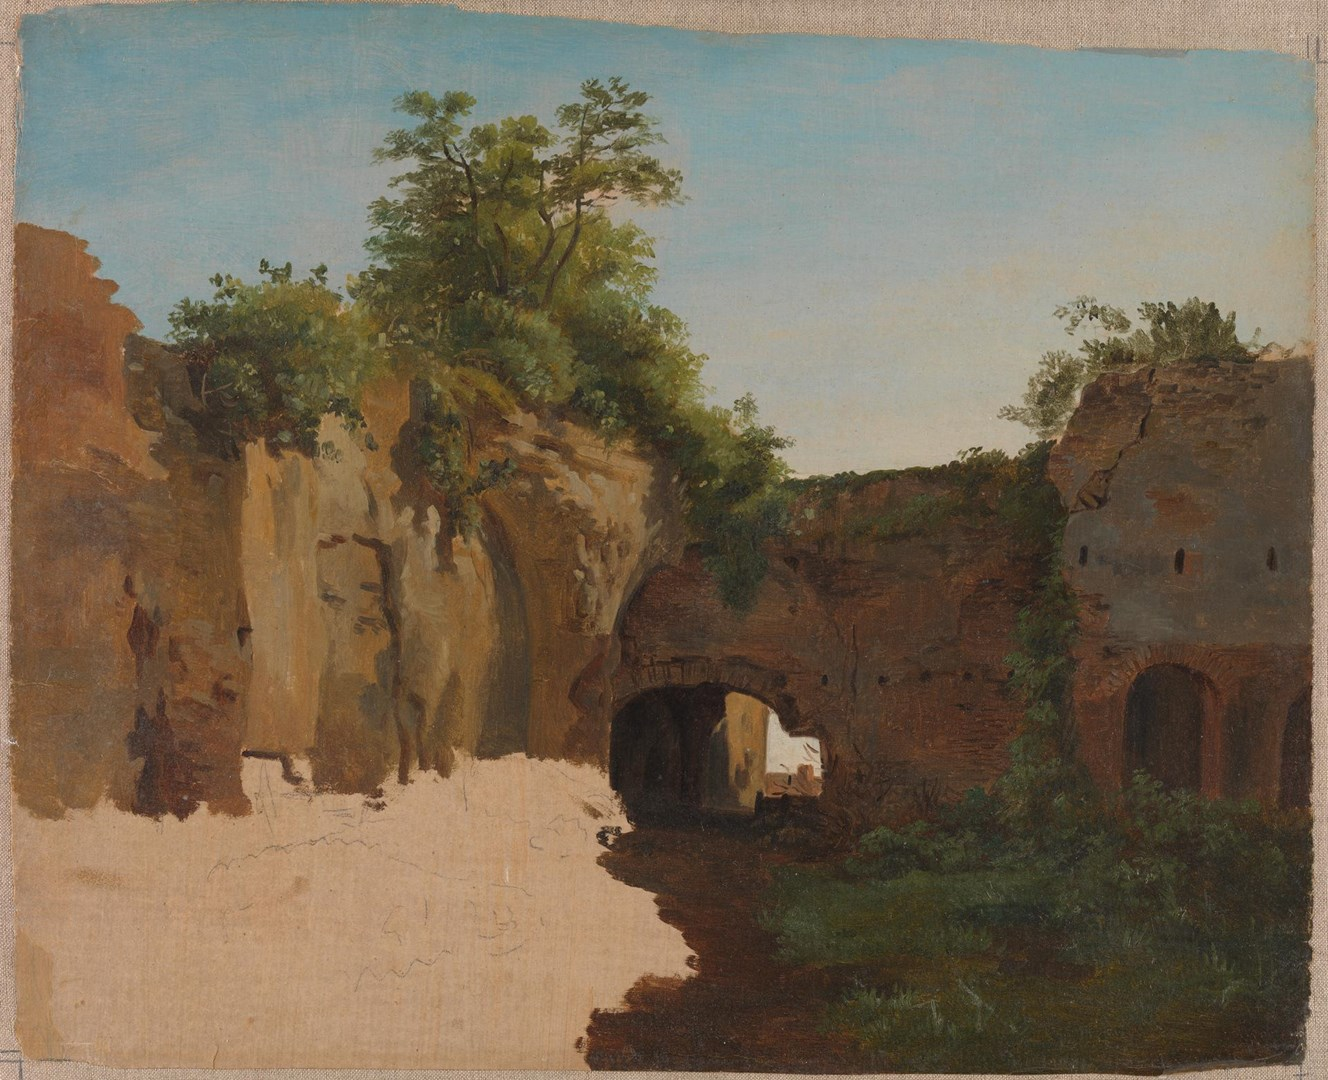 Antique Ruins (the Baths of Caracalla?) by Gilles-François-Joseph Closson